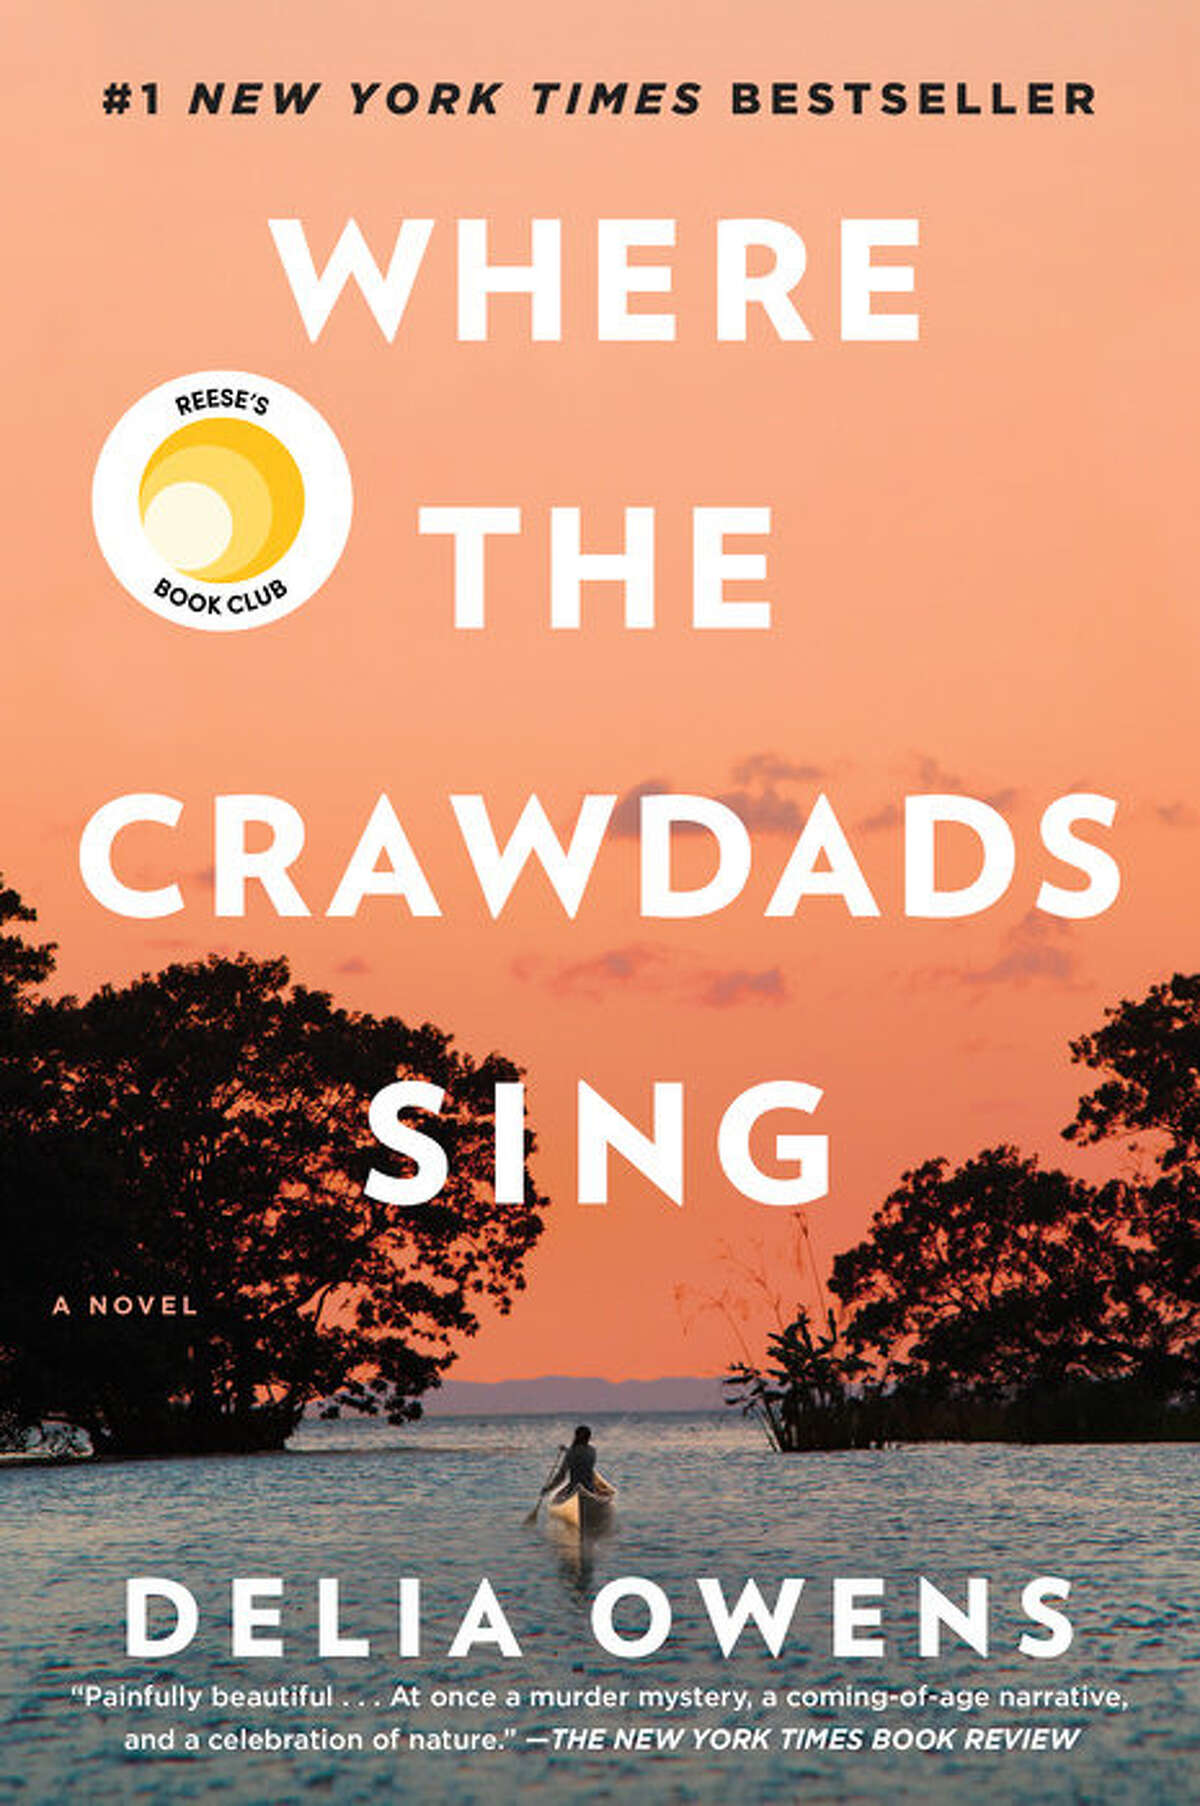 """Click through to see the Top 20 books on the Times Union Library Check List, a compilation of the most checked-out books at Capital Region Libraries. #1 : """"Where The Crawdads Sing"""" Total checkouts: 845 Made the Top 3 at 17 Capital Region libraries. Where the Crawdads Sing"""